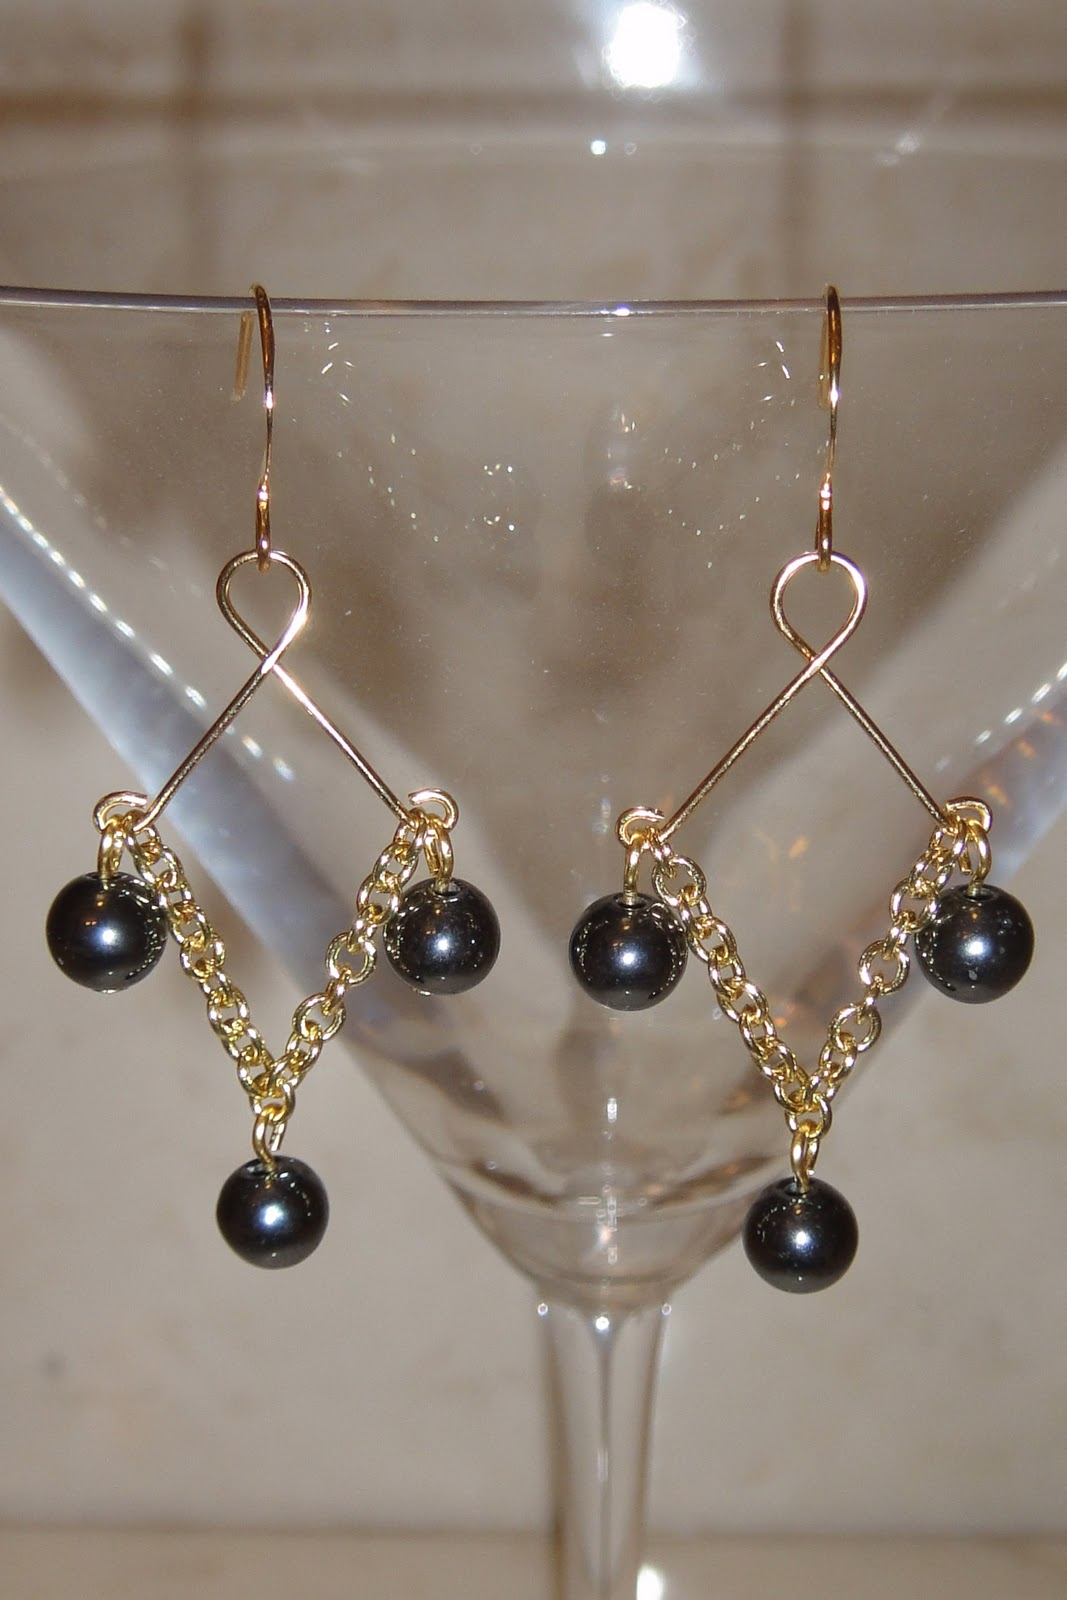 Uniquely You Jewelry Designs by Amanda Storts Gold Plated